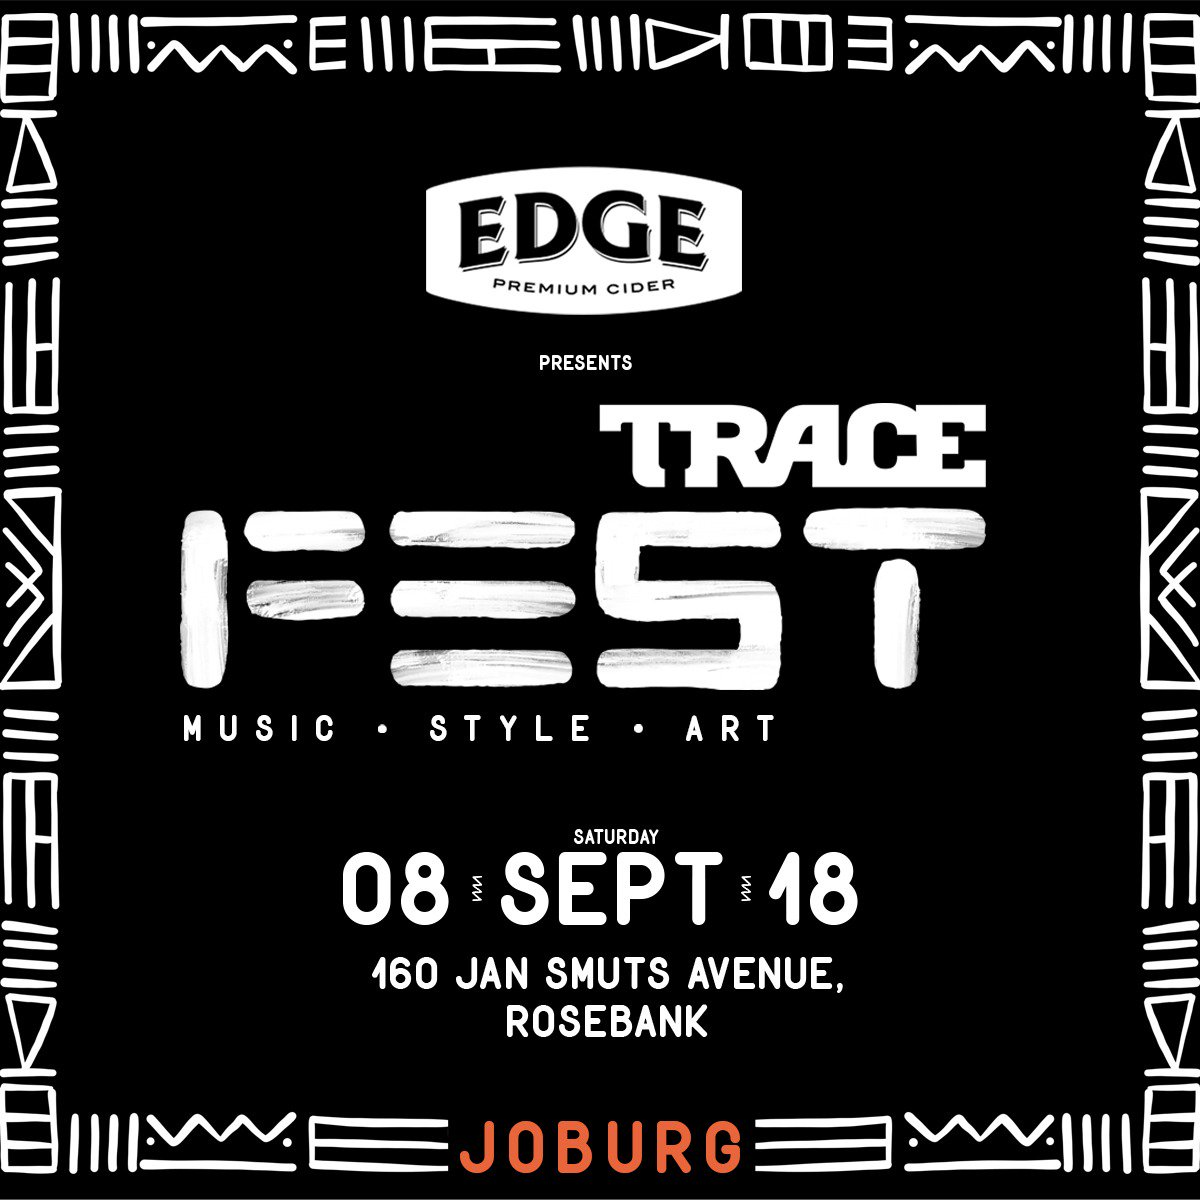 Stand A Chance To WIN! 3 VIP Tickets To TRACE Fest The ULTIMATE BLOCK PARTY DjgKYS WwAA4fmW